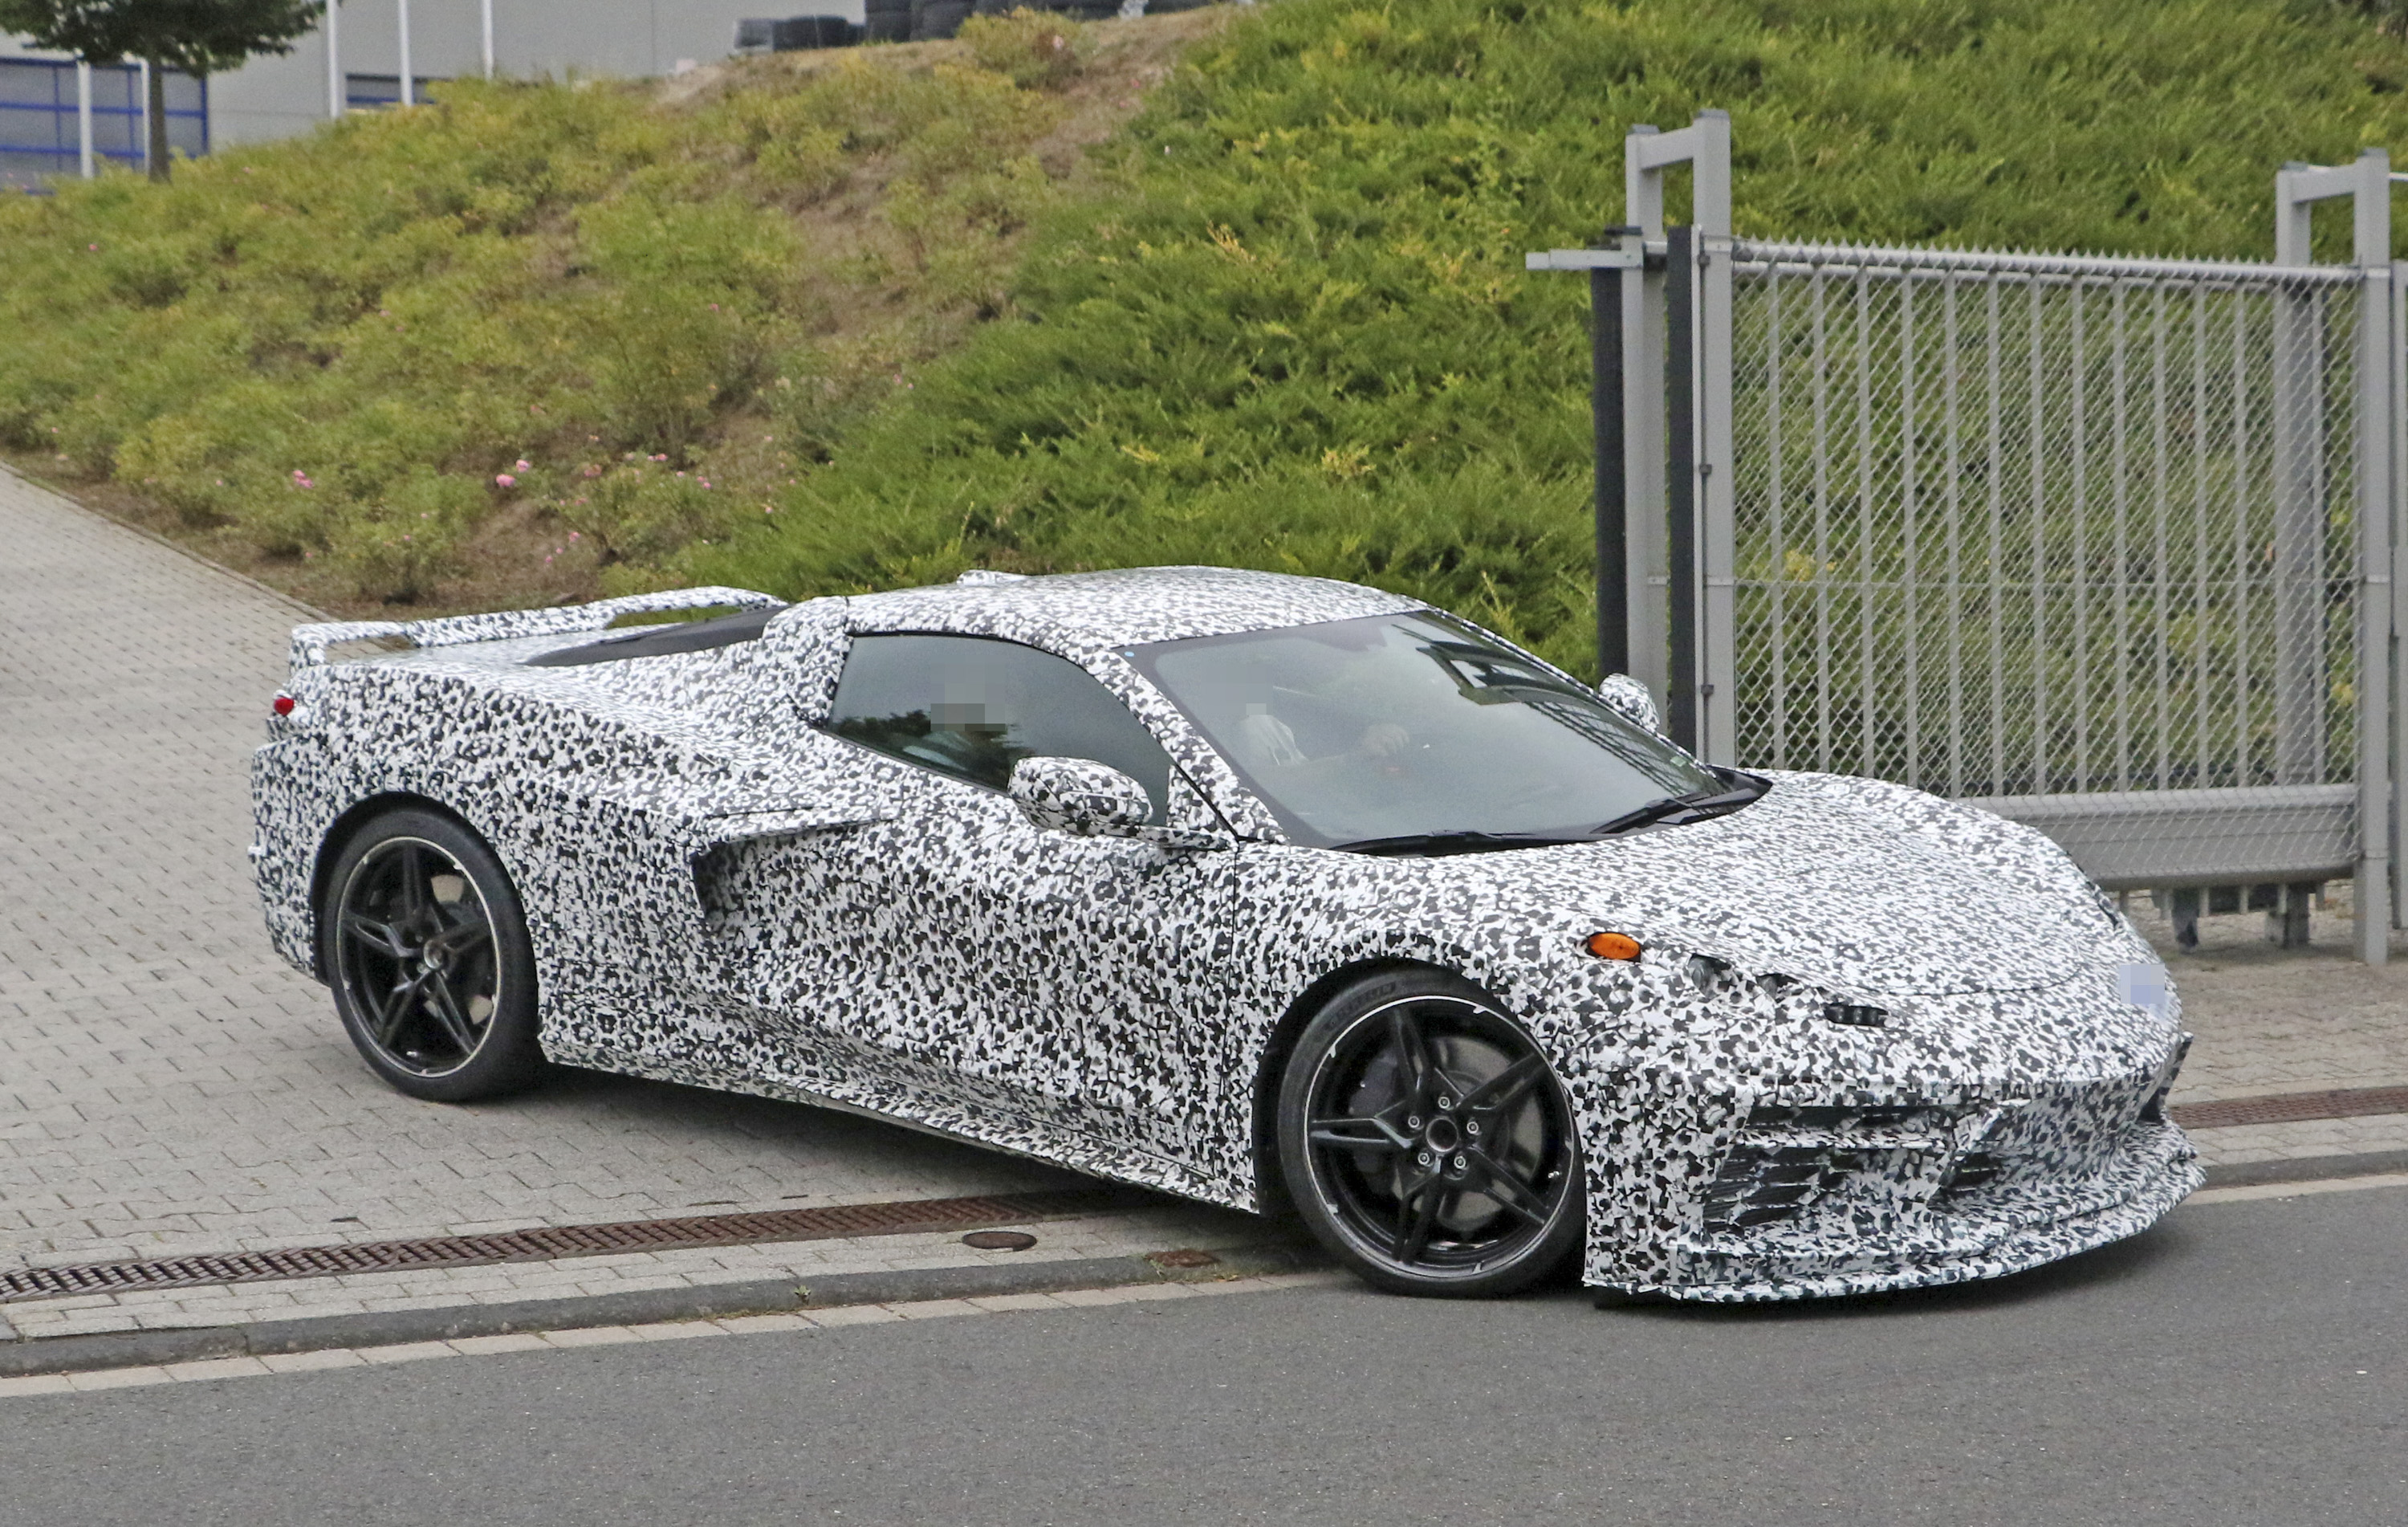 Is Chevy Afraid To Debut The 2020 Chevy C8 Corvette Next To The 2020